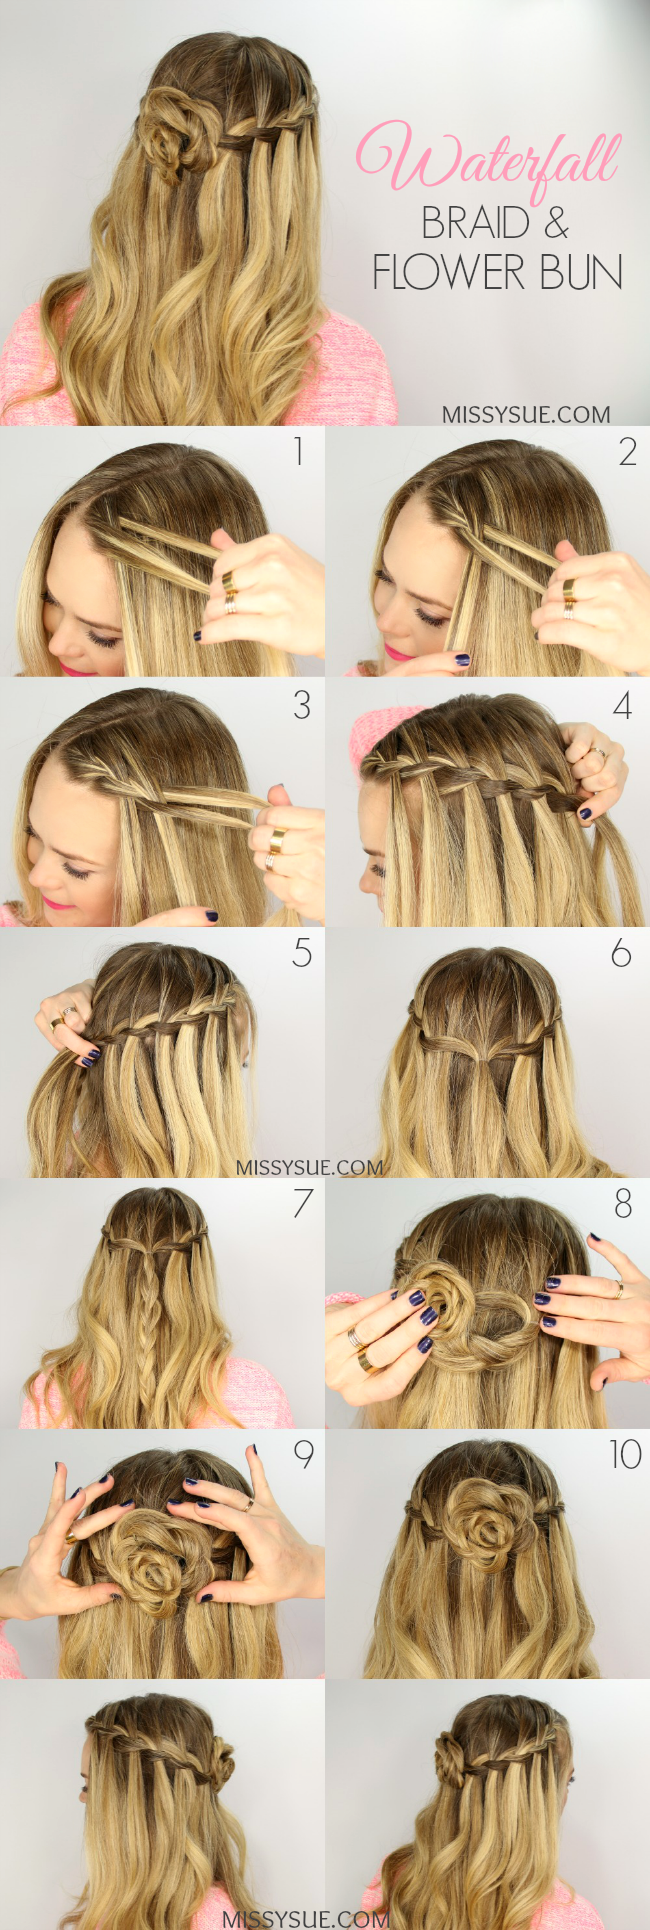 Super easy diy braided hairstyles for wedding tutorials peinados